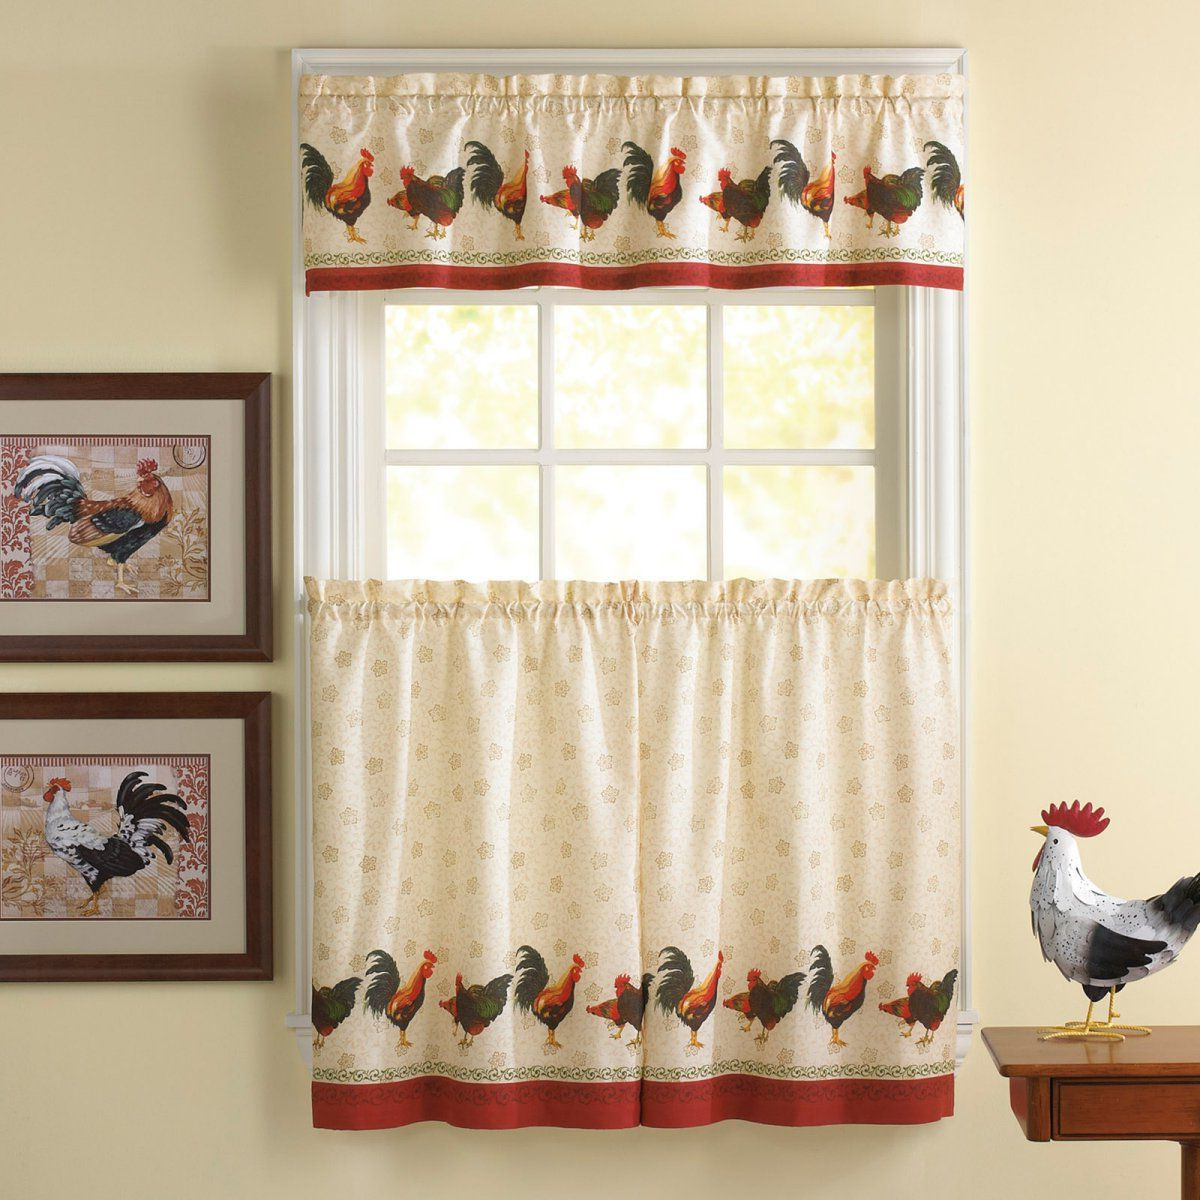 Recent Awesome Kitchen Curtains Sets #1 Country Rooster Kitchen With Traditional Two Piece Tailored Tier And Swag Window Curtains Sets With Ornate Rooster Print (Gallery 9 of 20)